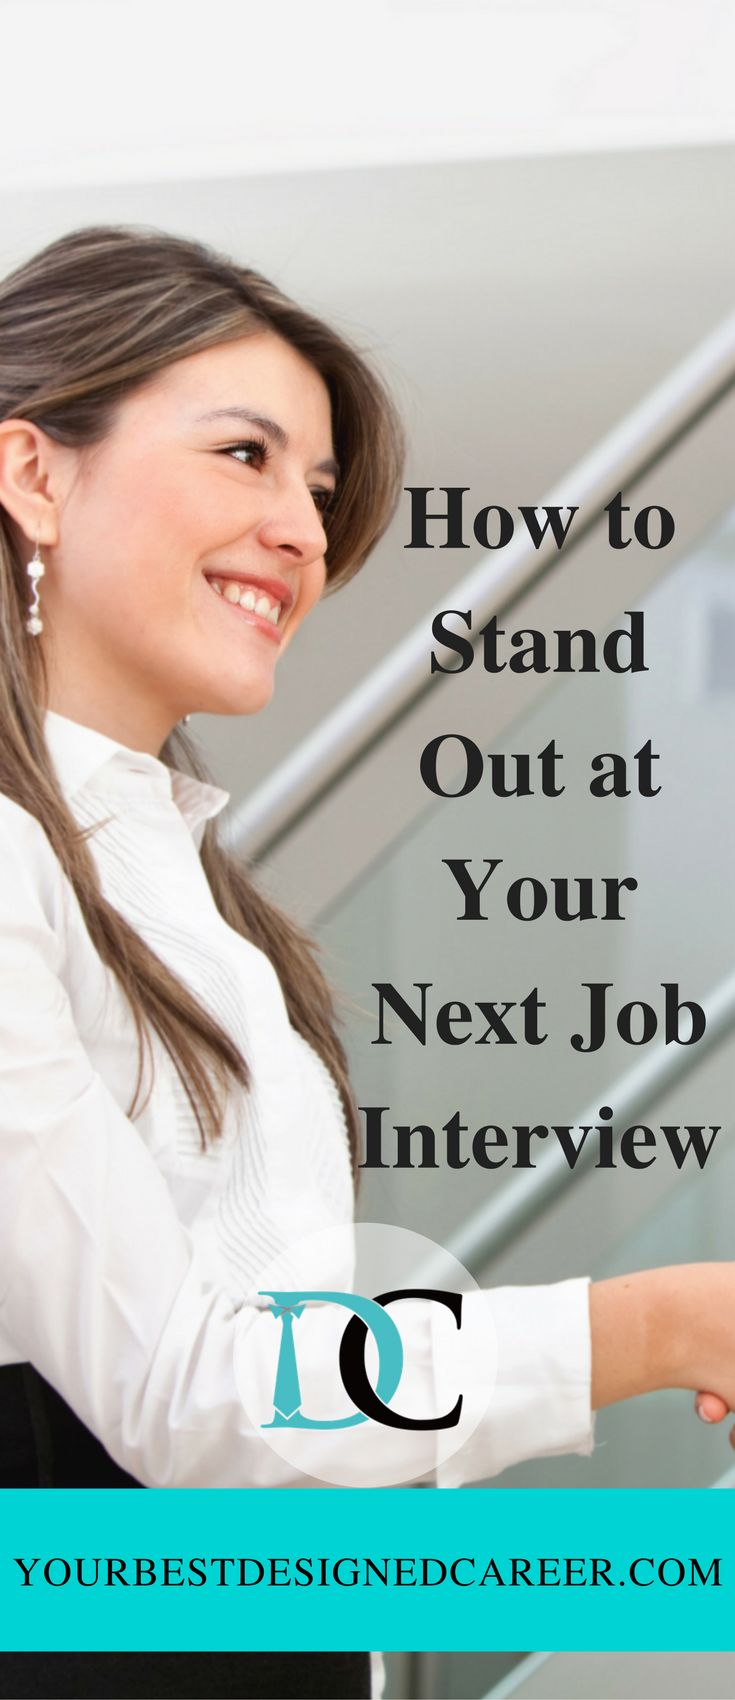 If you're going to land the job – you need to stand out in your interview. Here are a few important tips to remember that can help.